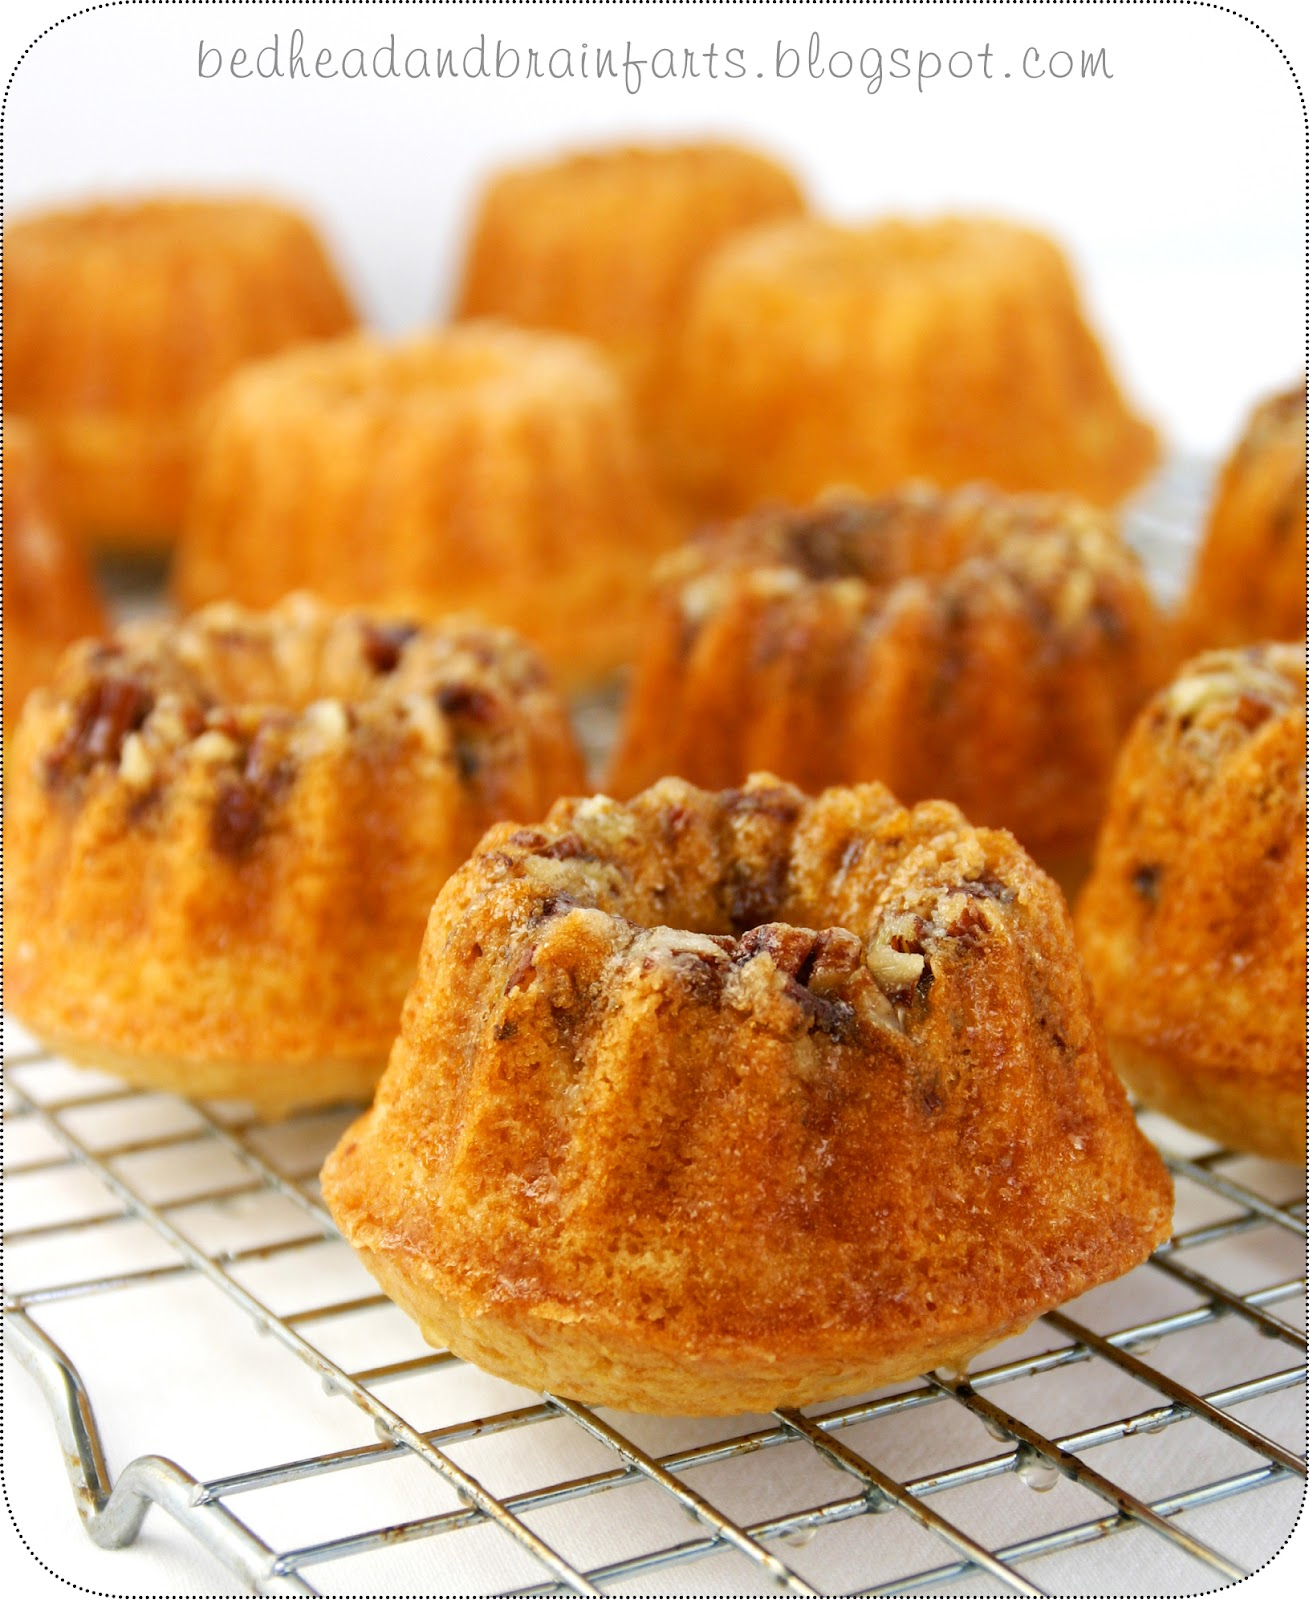 Bedhead And Brainfarts: Gluten-Free Rum Cake...to Die For